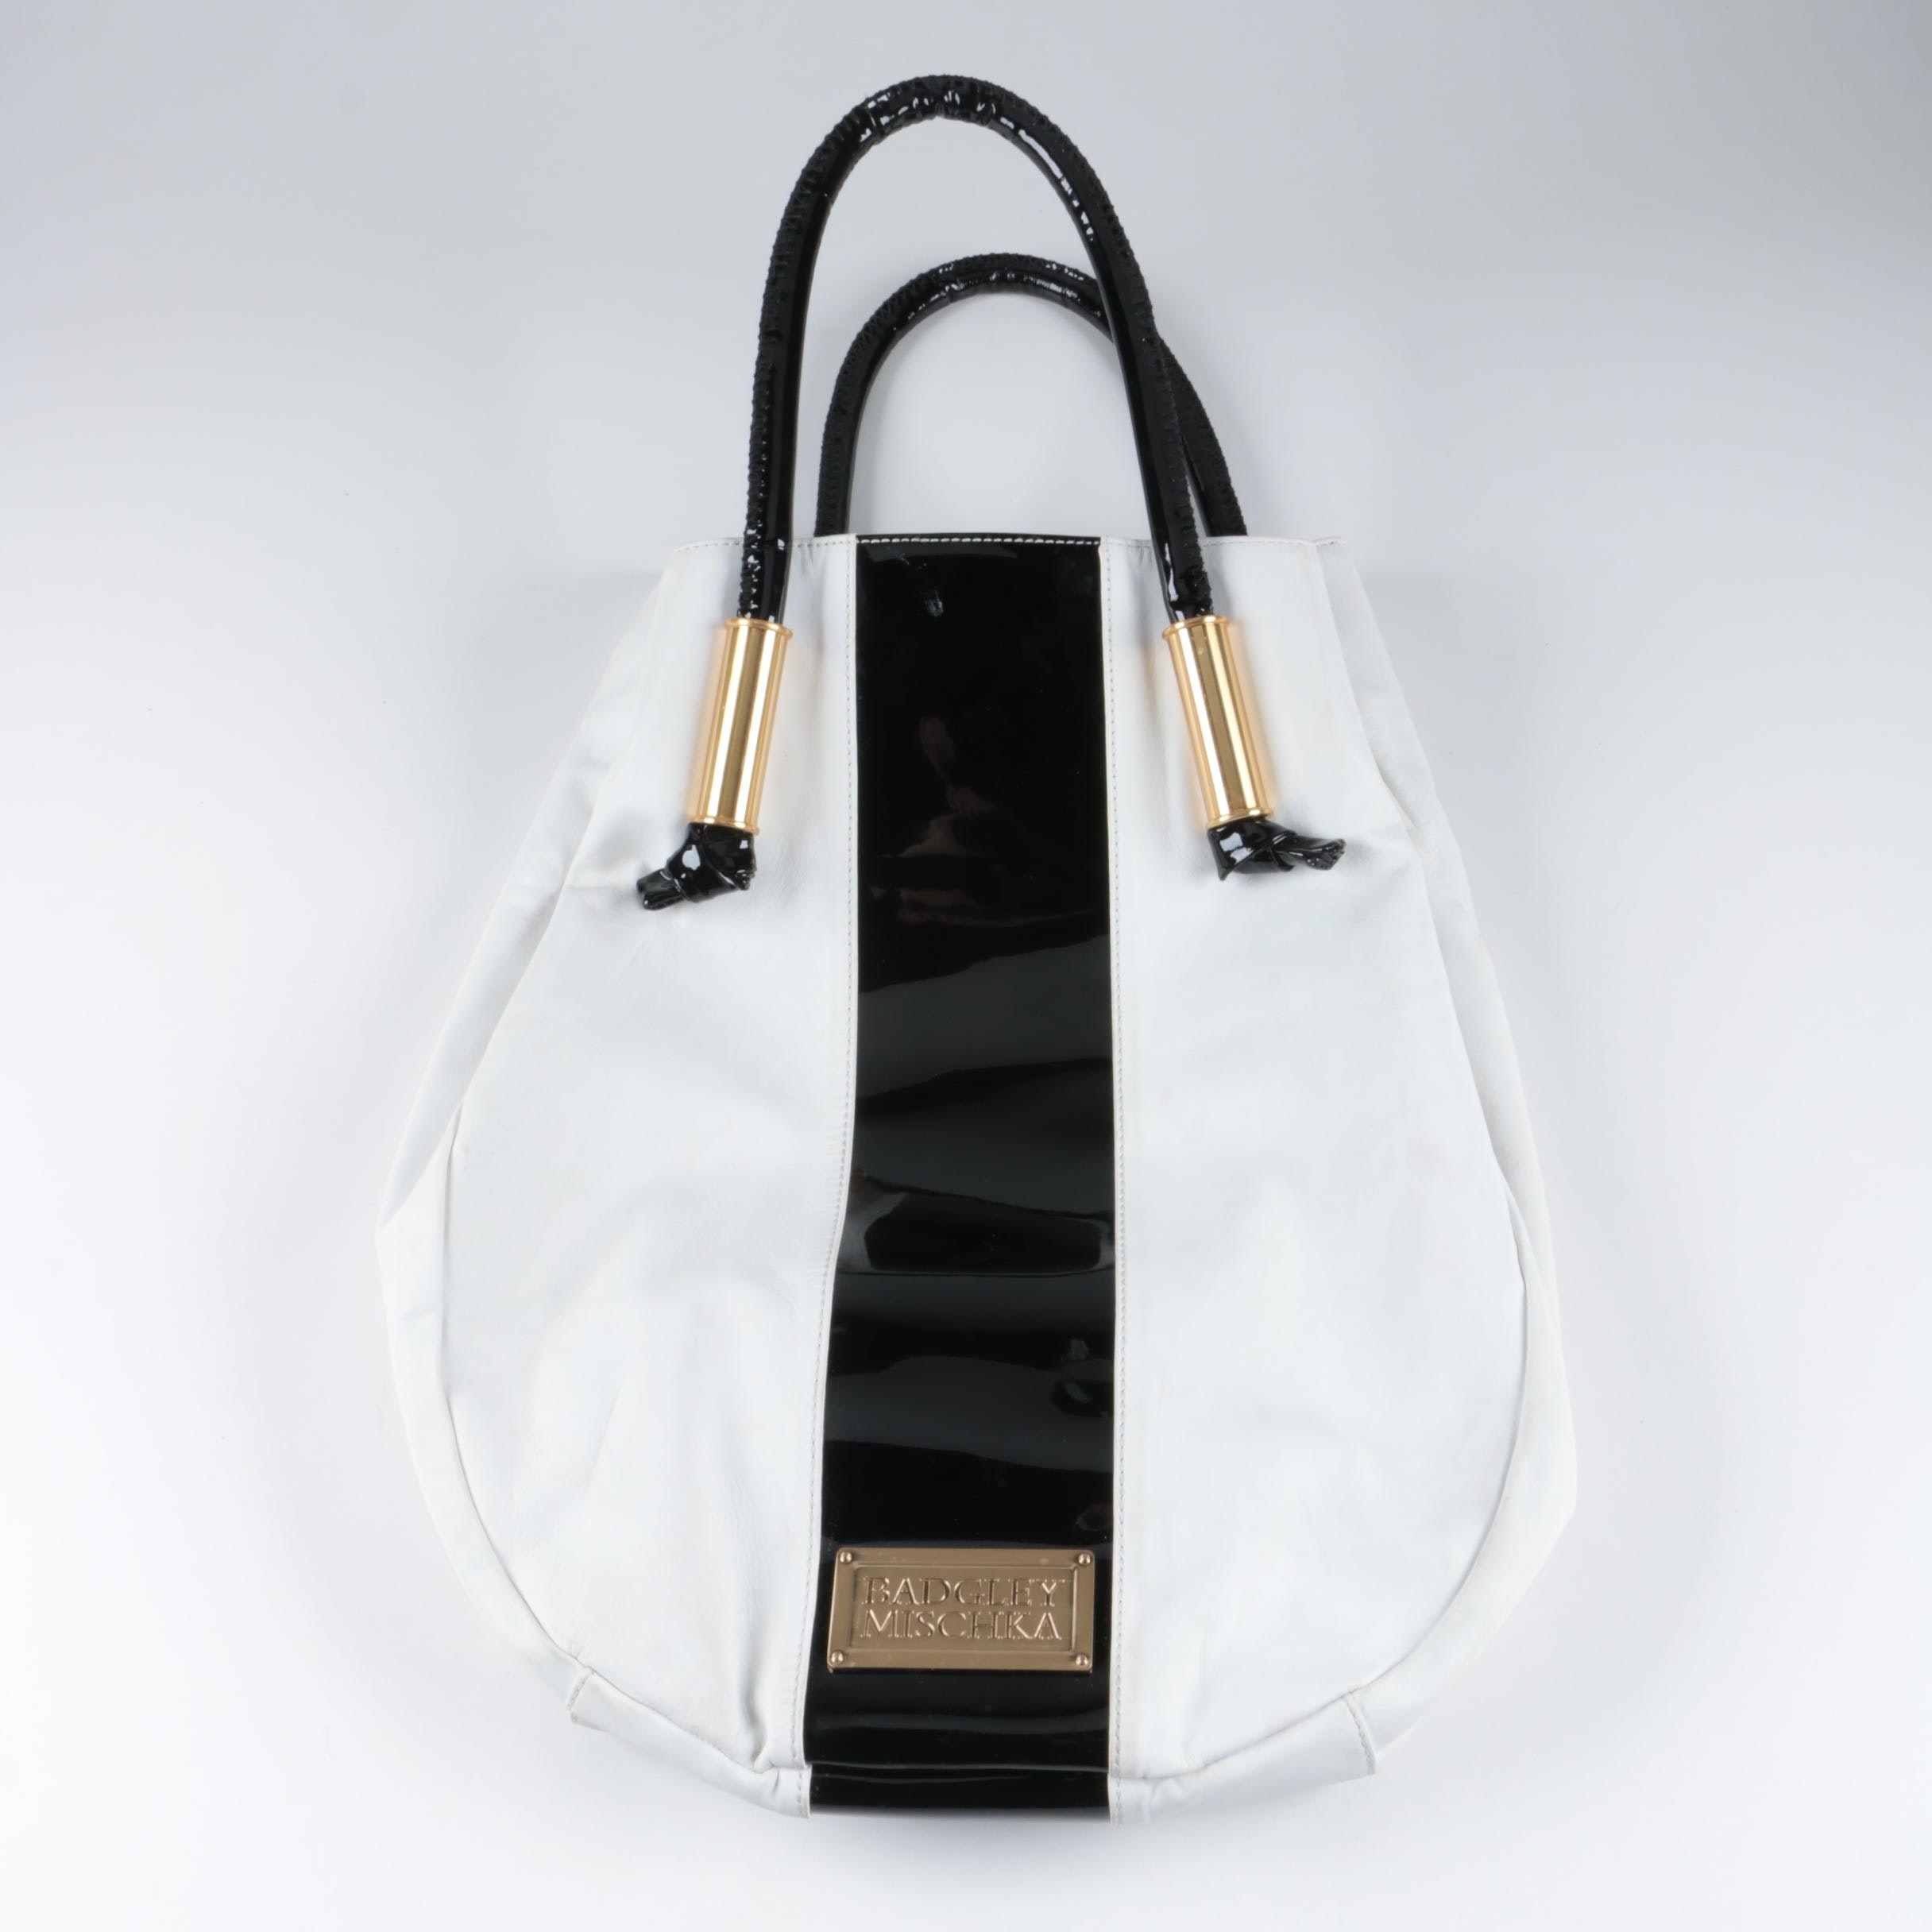 Badgley Mischka Black and White Leather Tote